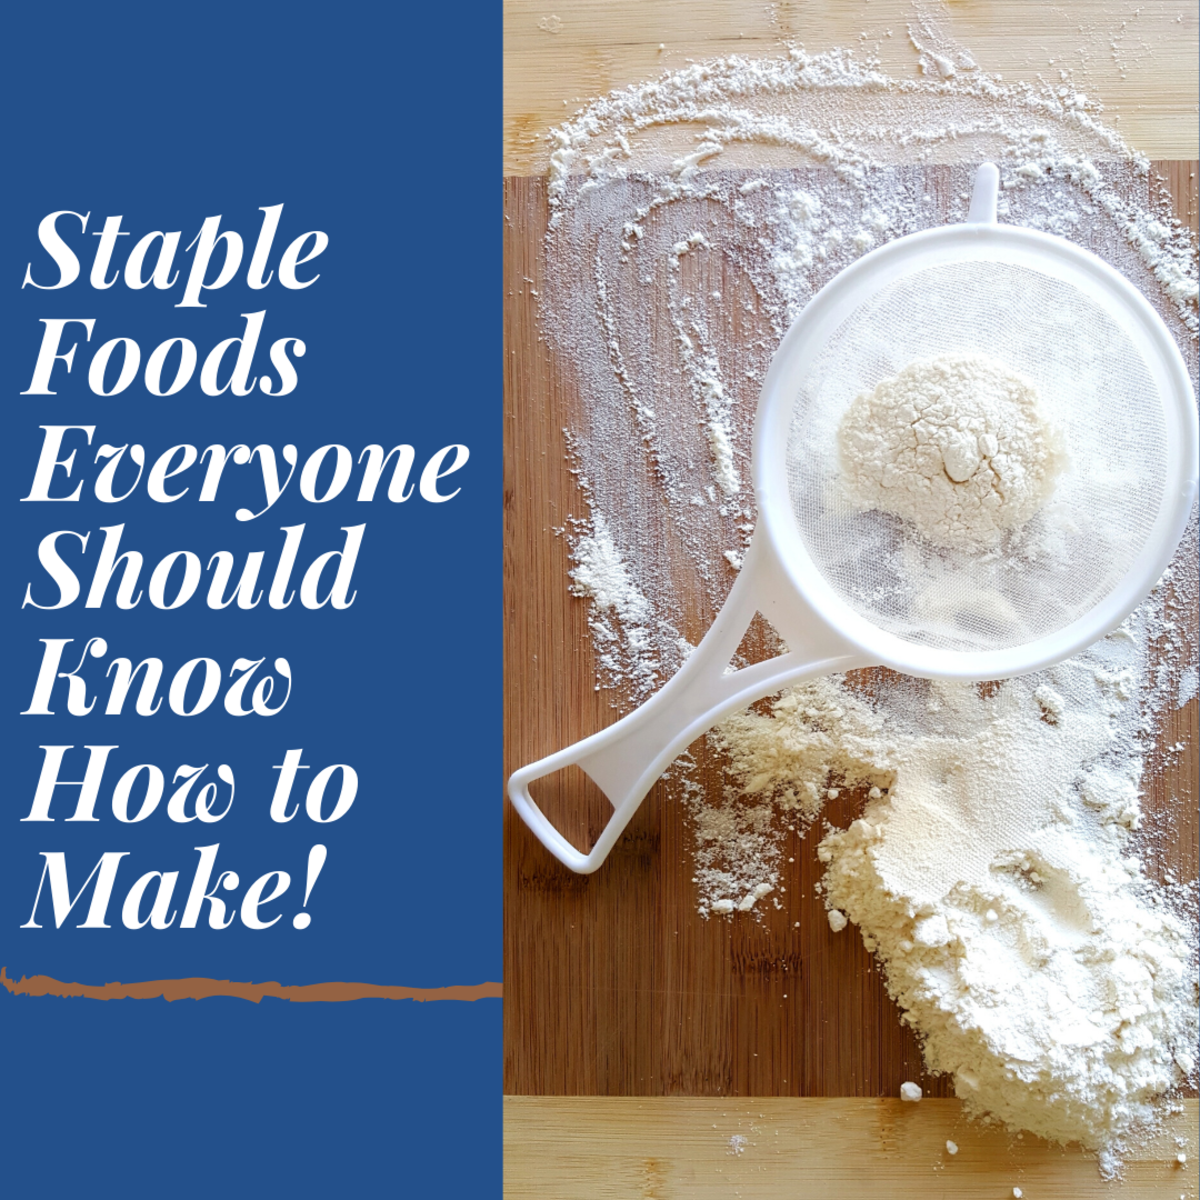 You don't have to be an expert chef to make these delicious staple foods.